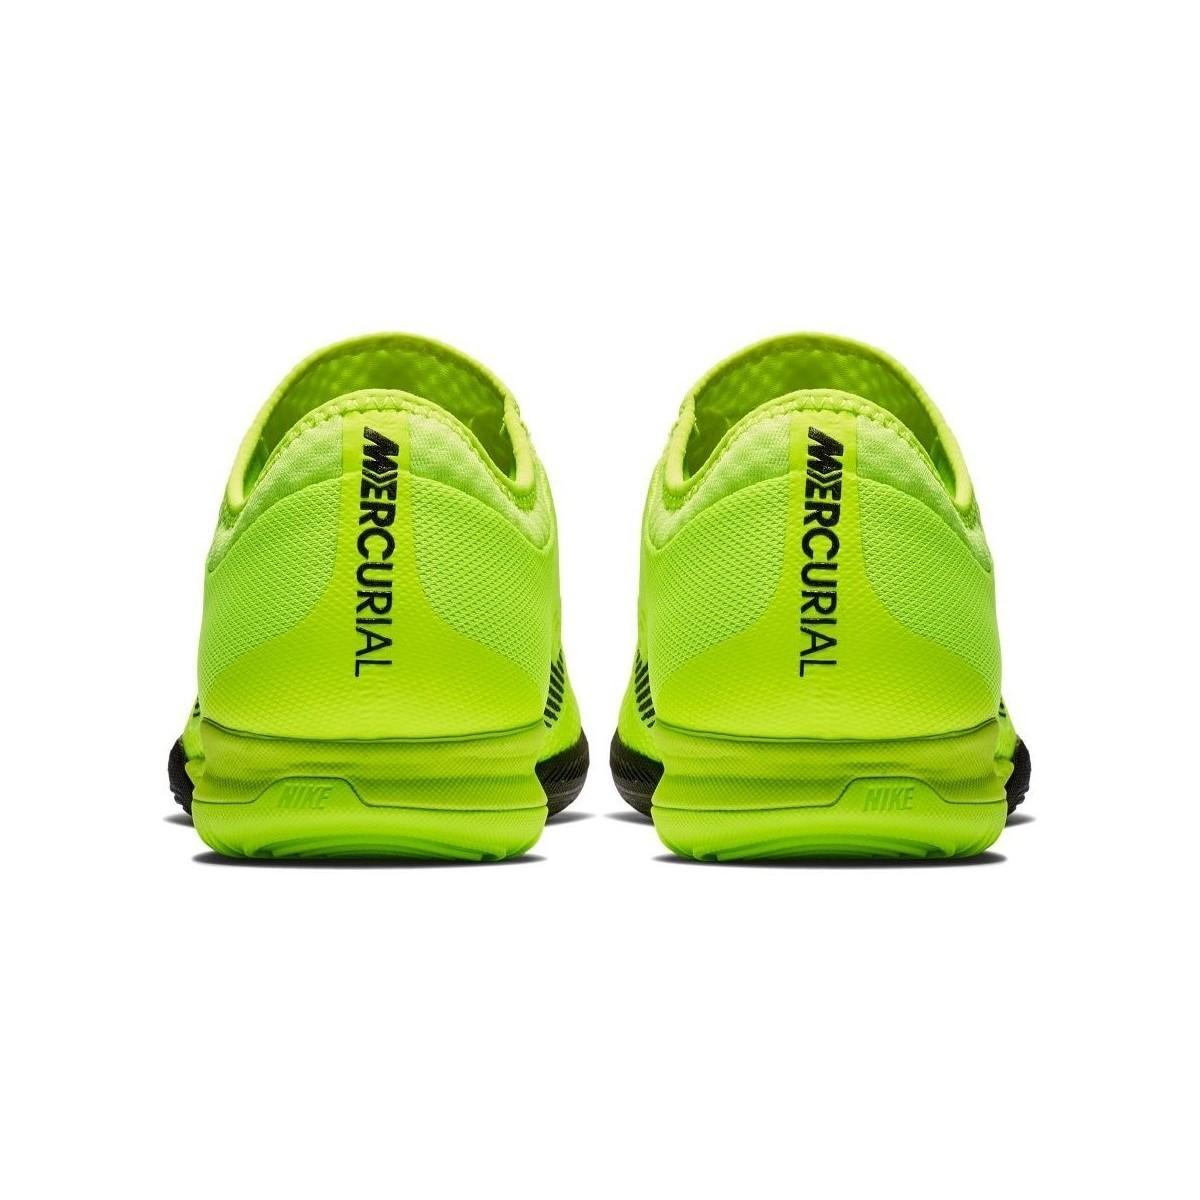 ff70e734d0b Nike Vaporx 12 Pro Ic Indoor Football Trainers in Green for Men - Lyst